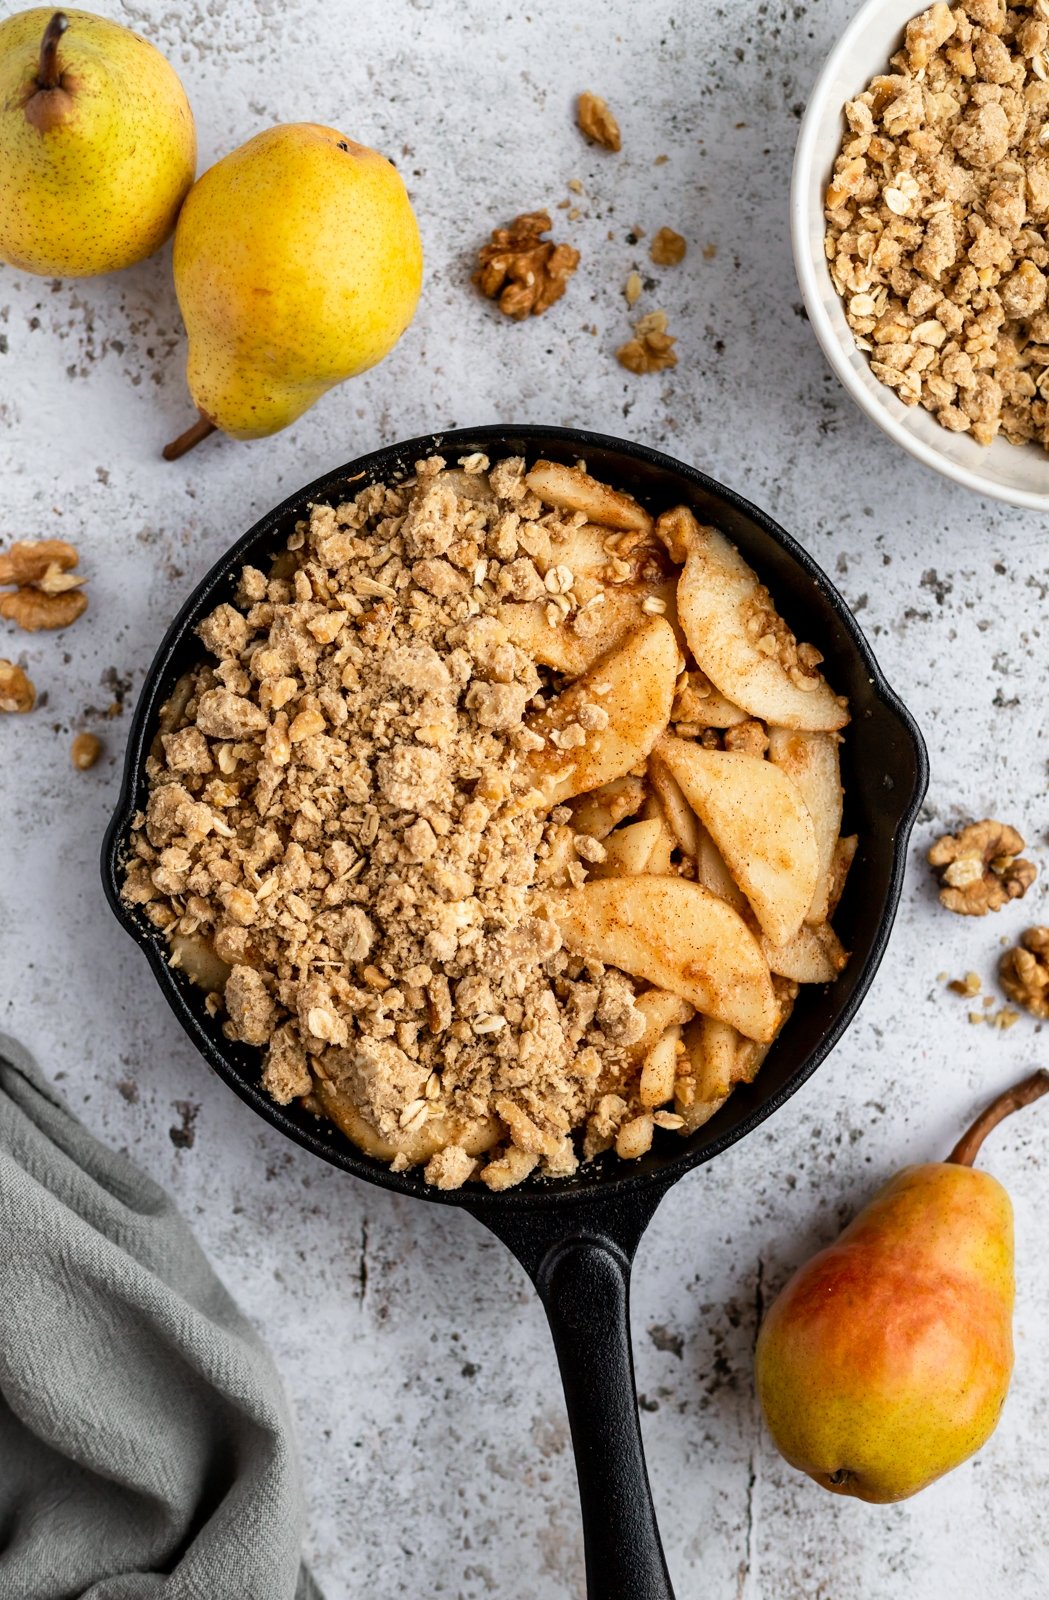 unbaked healthy pear crisp in a skillet next to pears